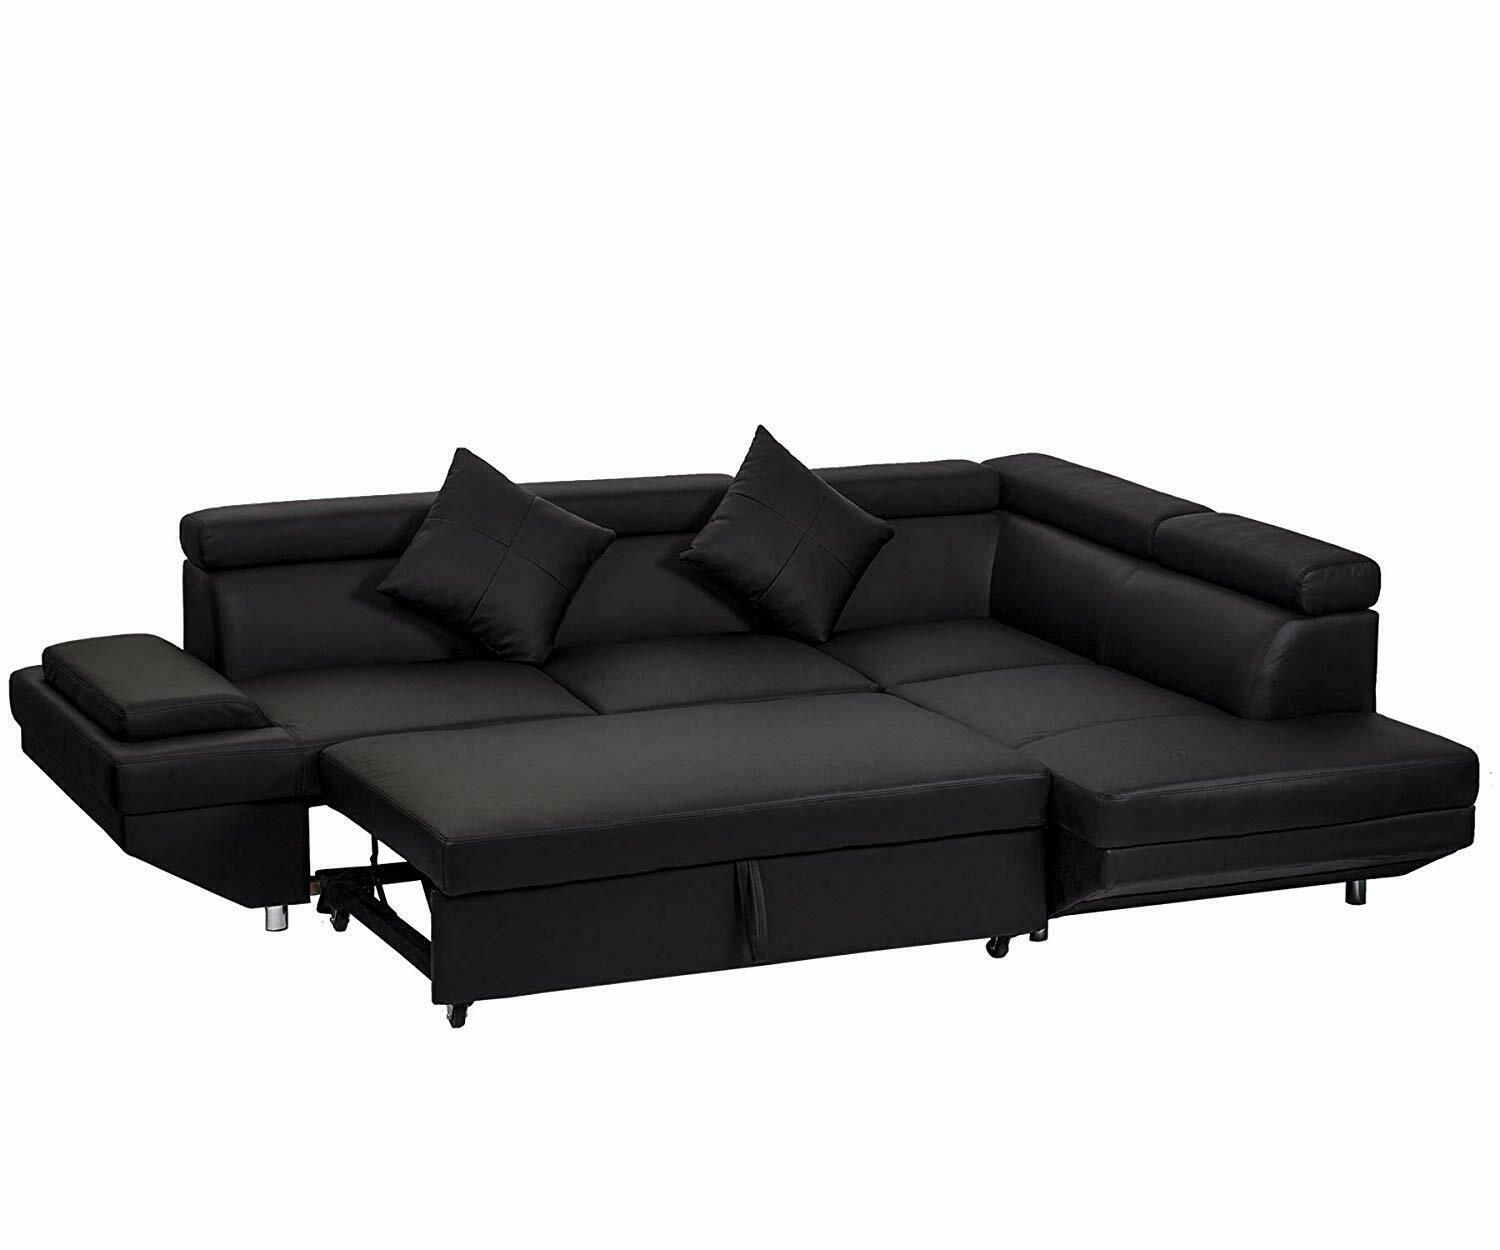 Contemporary Sectional Modern Sofa Bed Black Wit In Home Garden Furniture Sofas Loveseats Chaises Ebay For Blanja